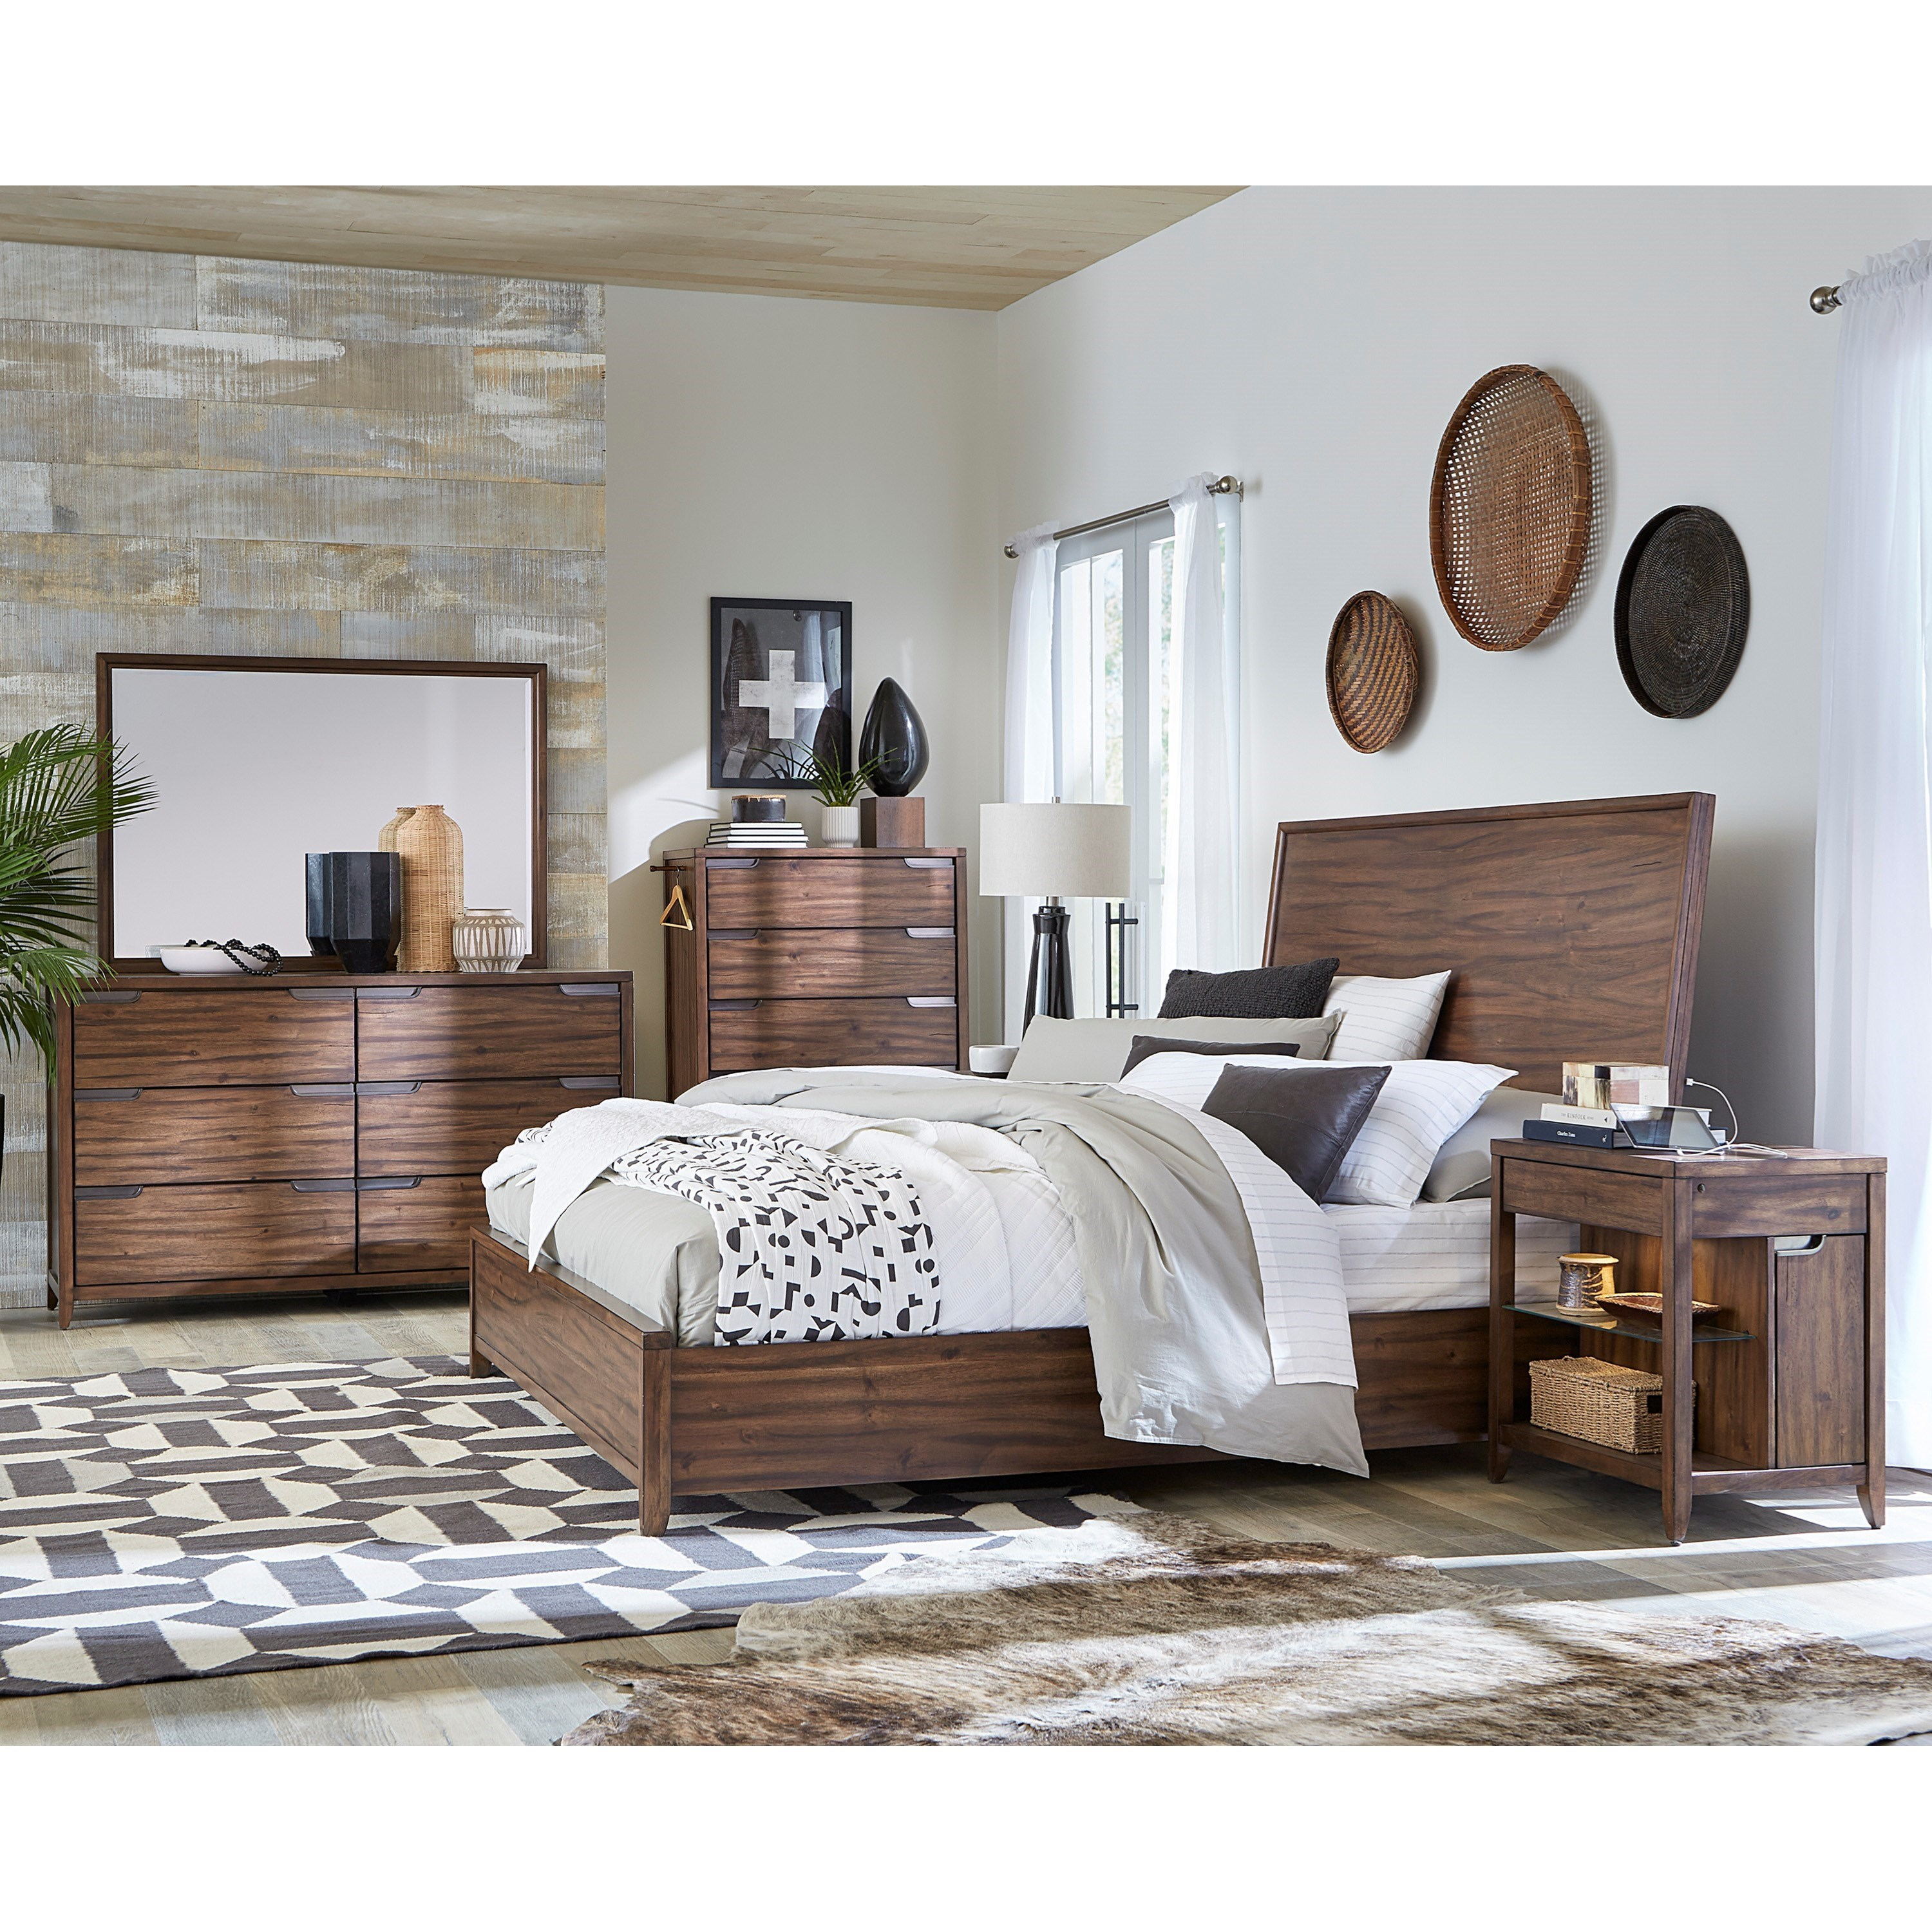 Peyton I317 King Bedroom Group by Aspenhome at Baer's Furniture